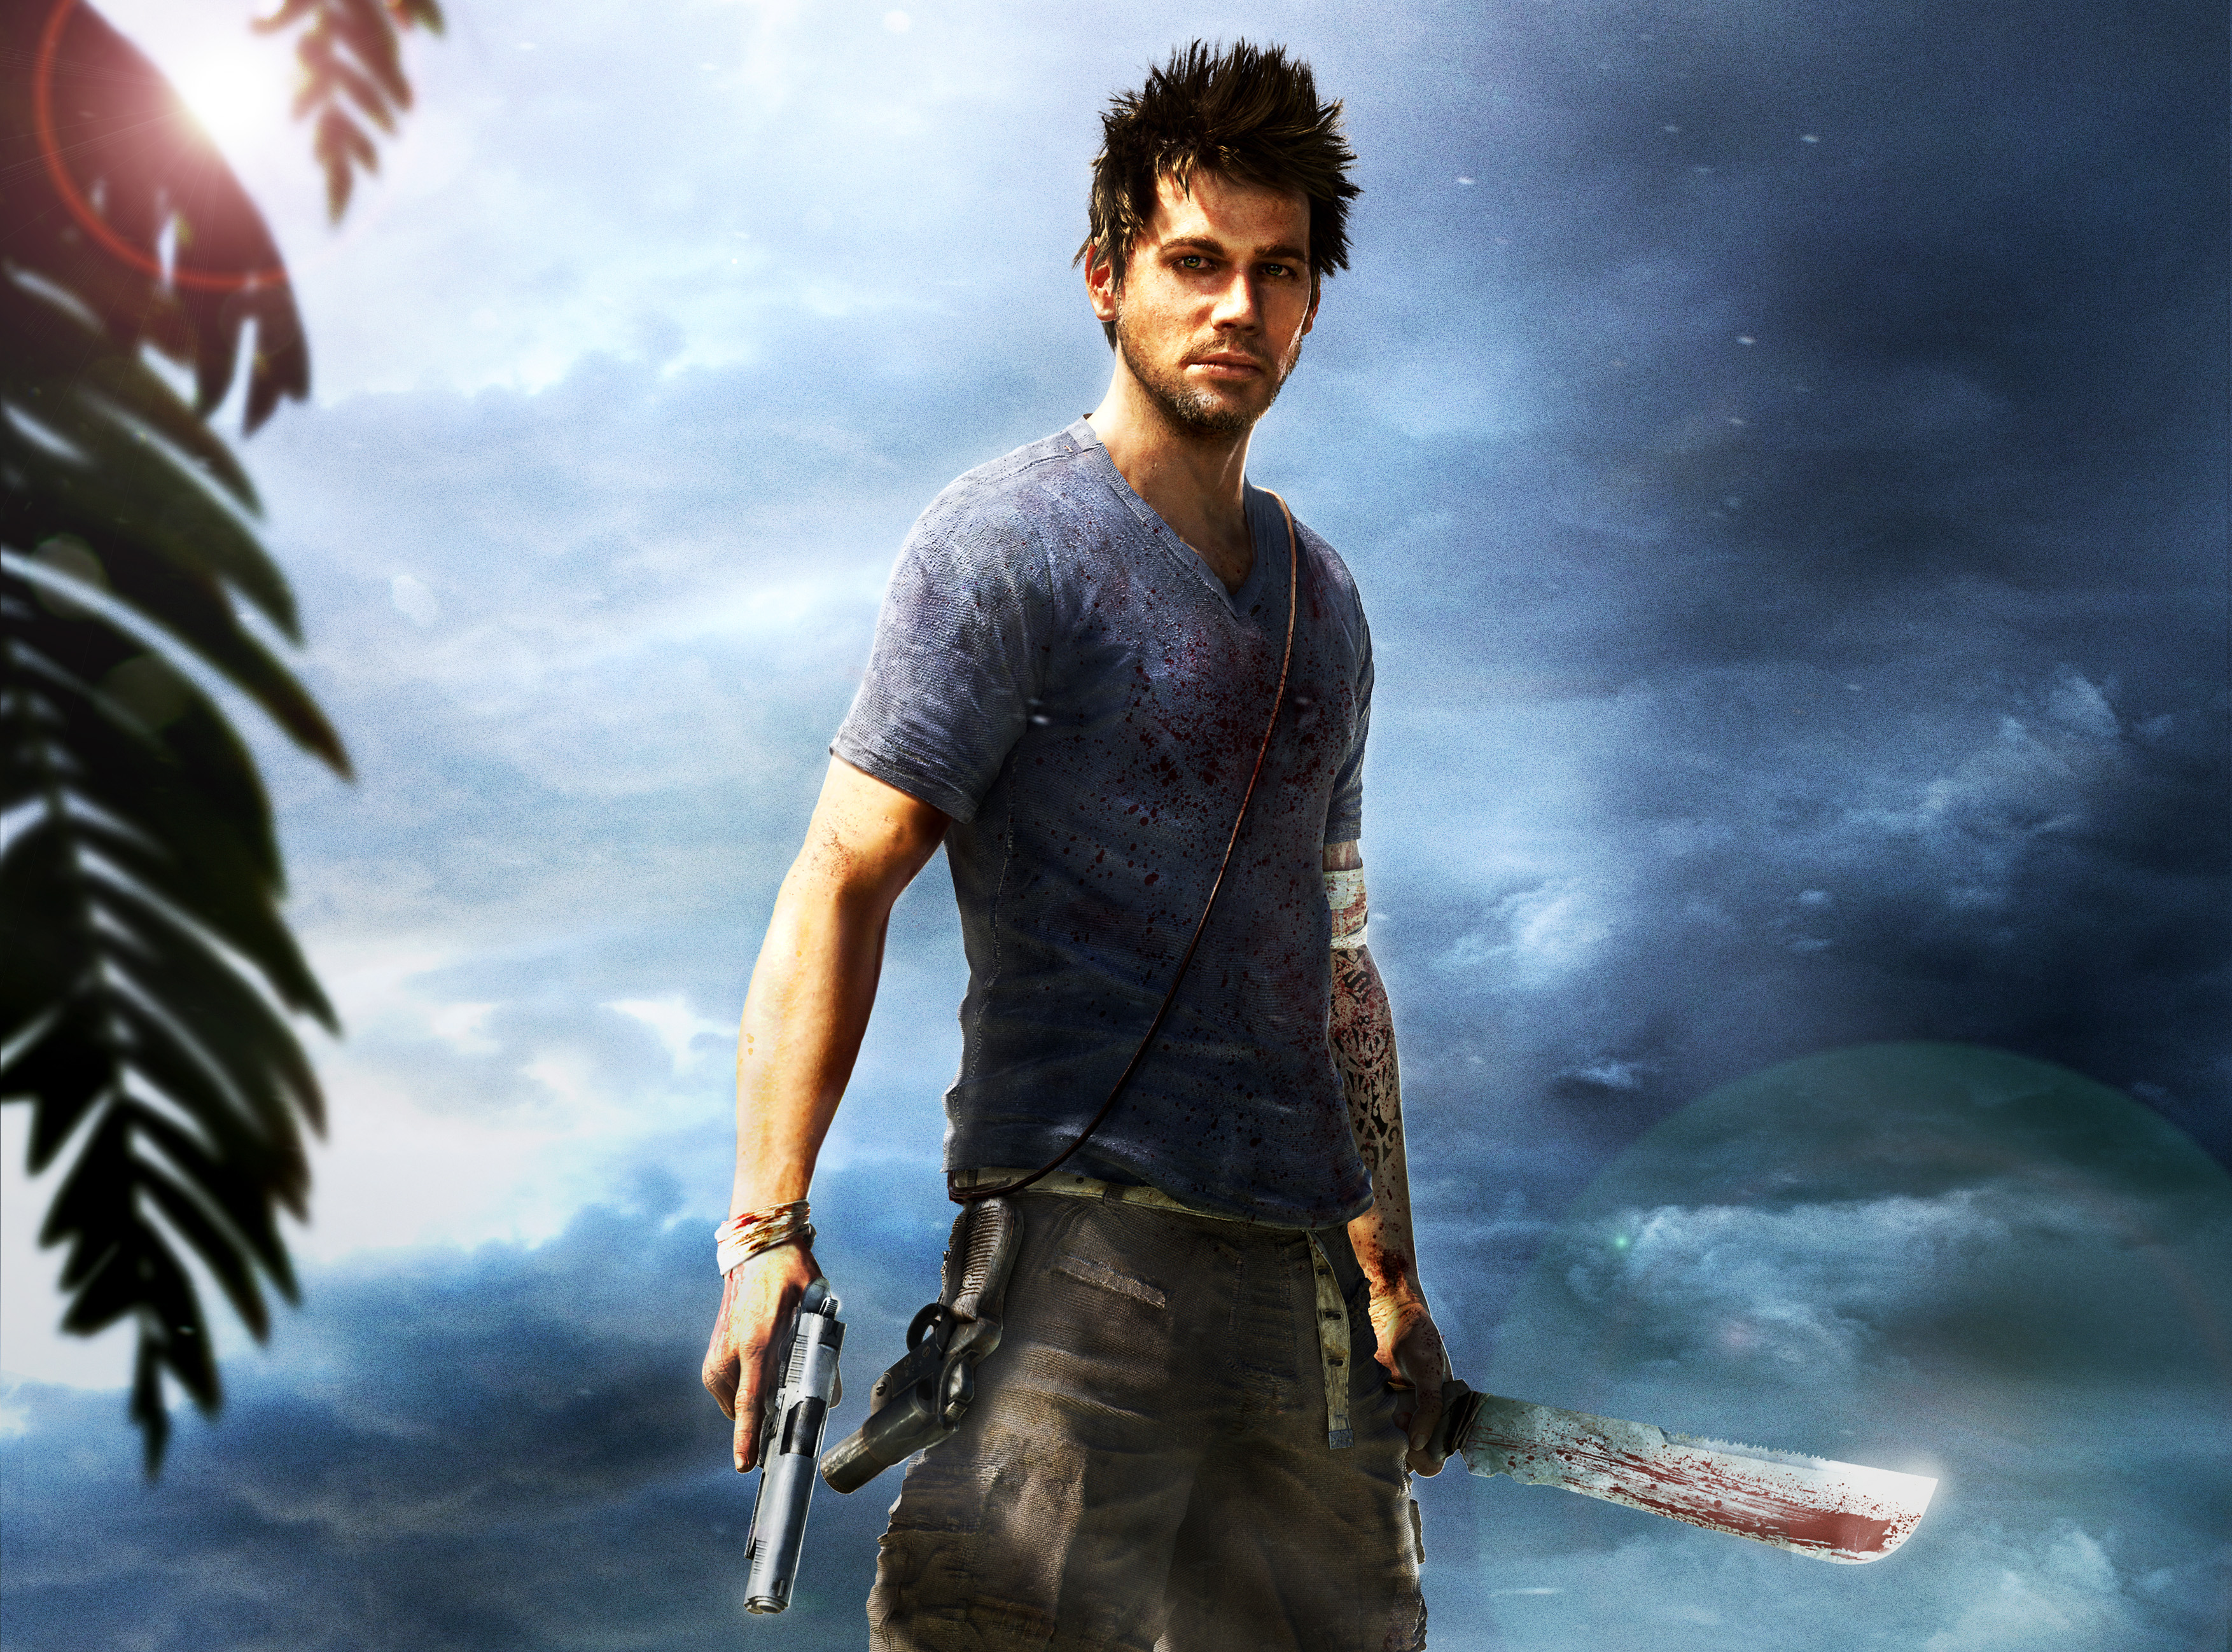 Jason Brody - Far Cry 3 (remastered) by Thidril on DeviantArt